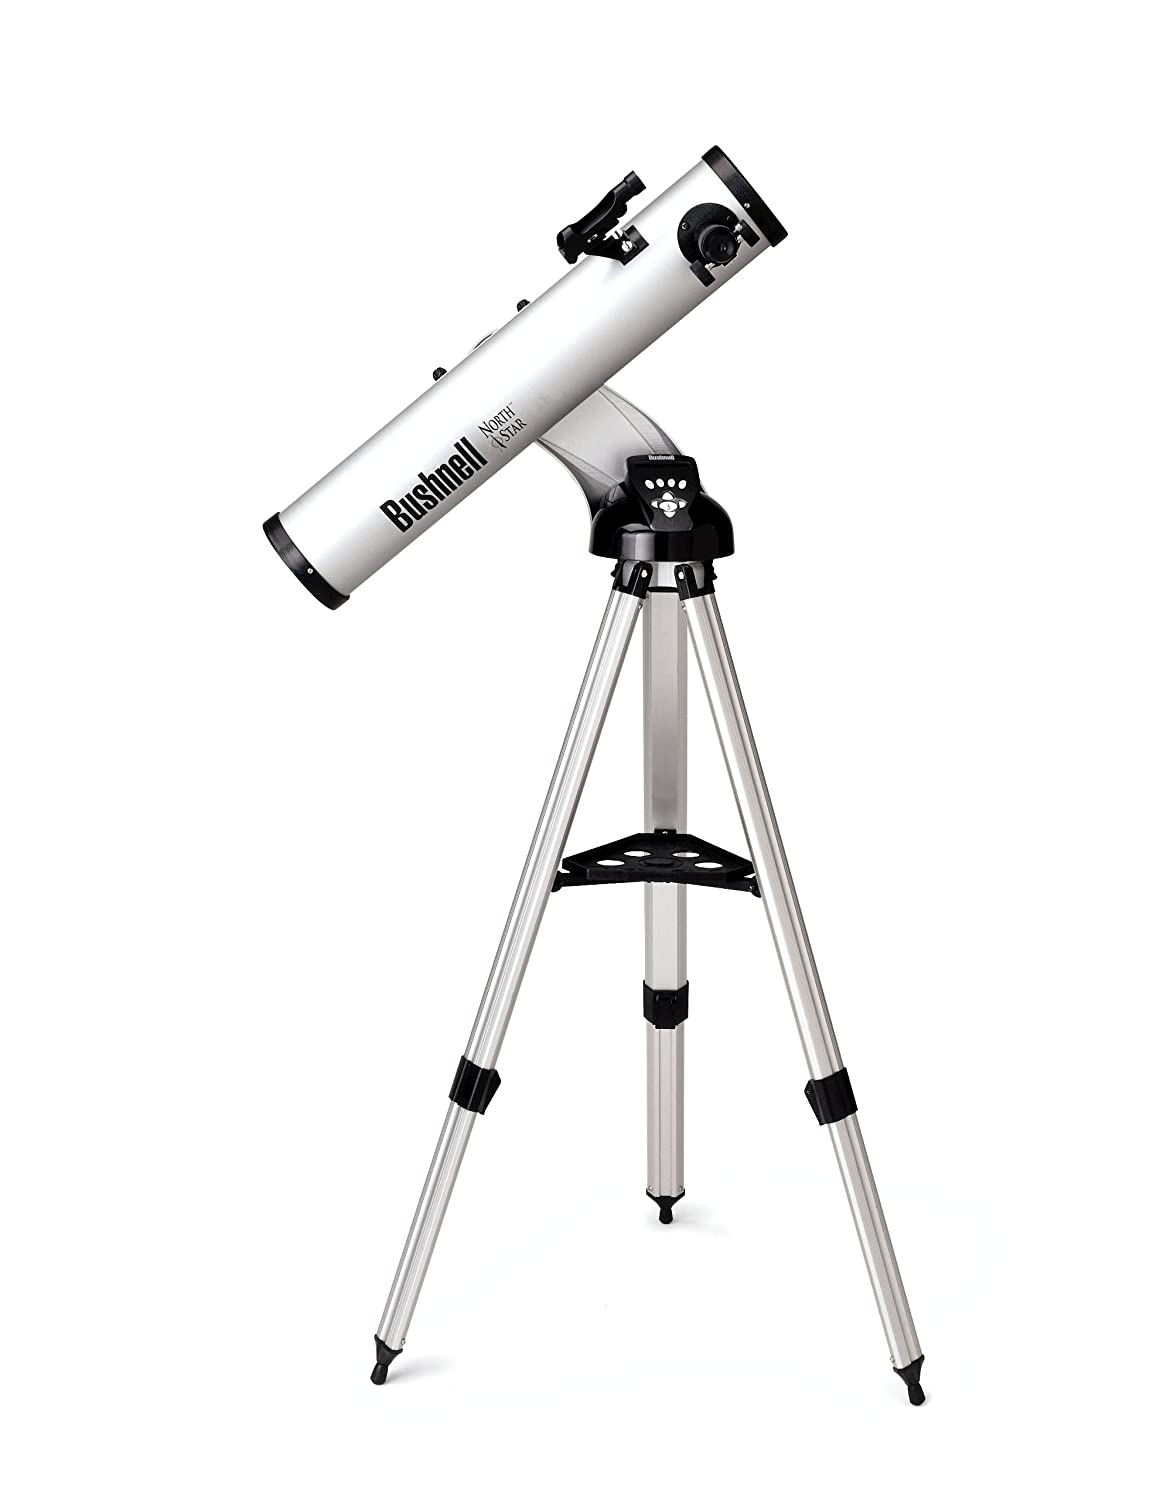 Amazon.com: Bushnell NorthStar 900x114mm Motorized Go To Reflector Telescope:  Sports & Outdoors